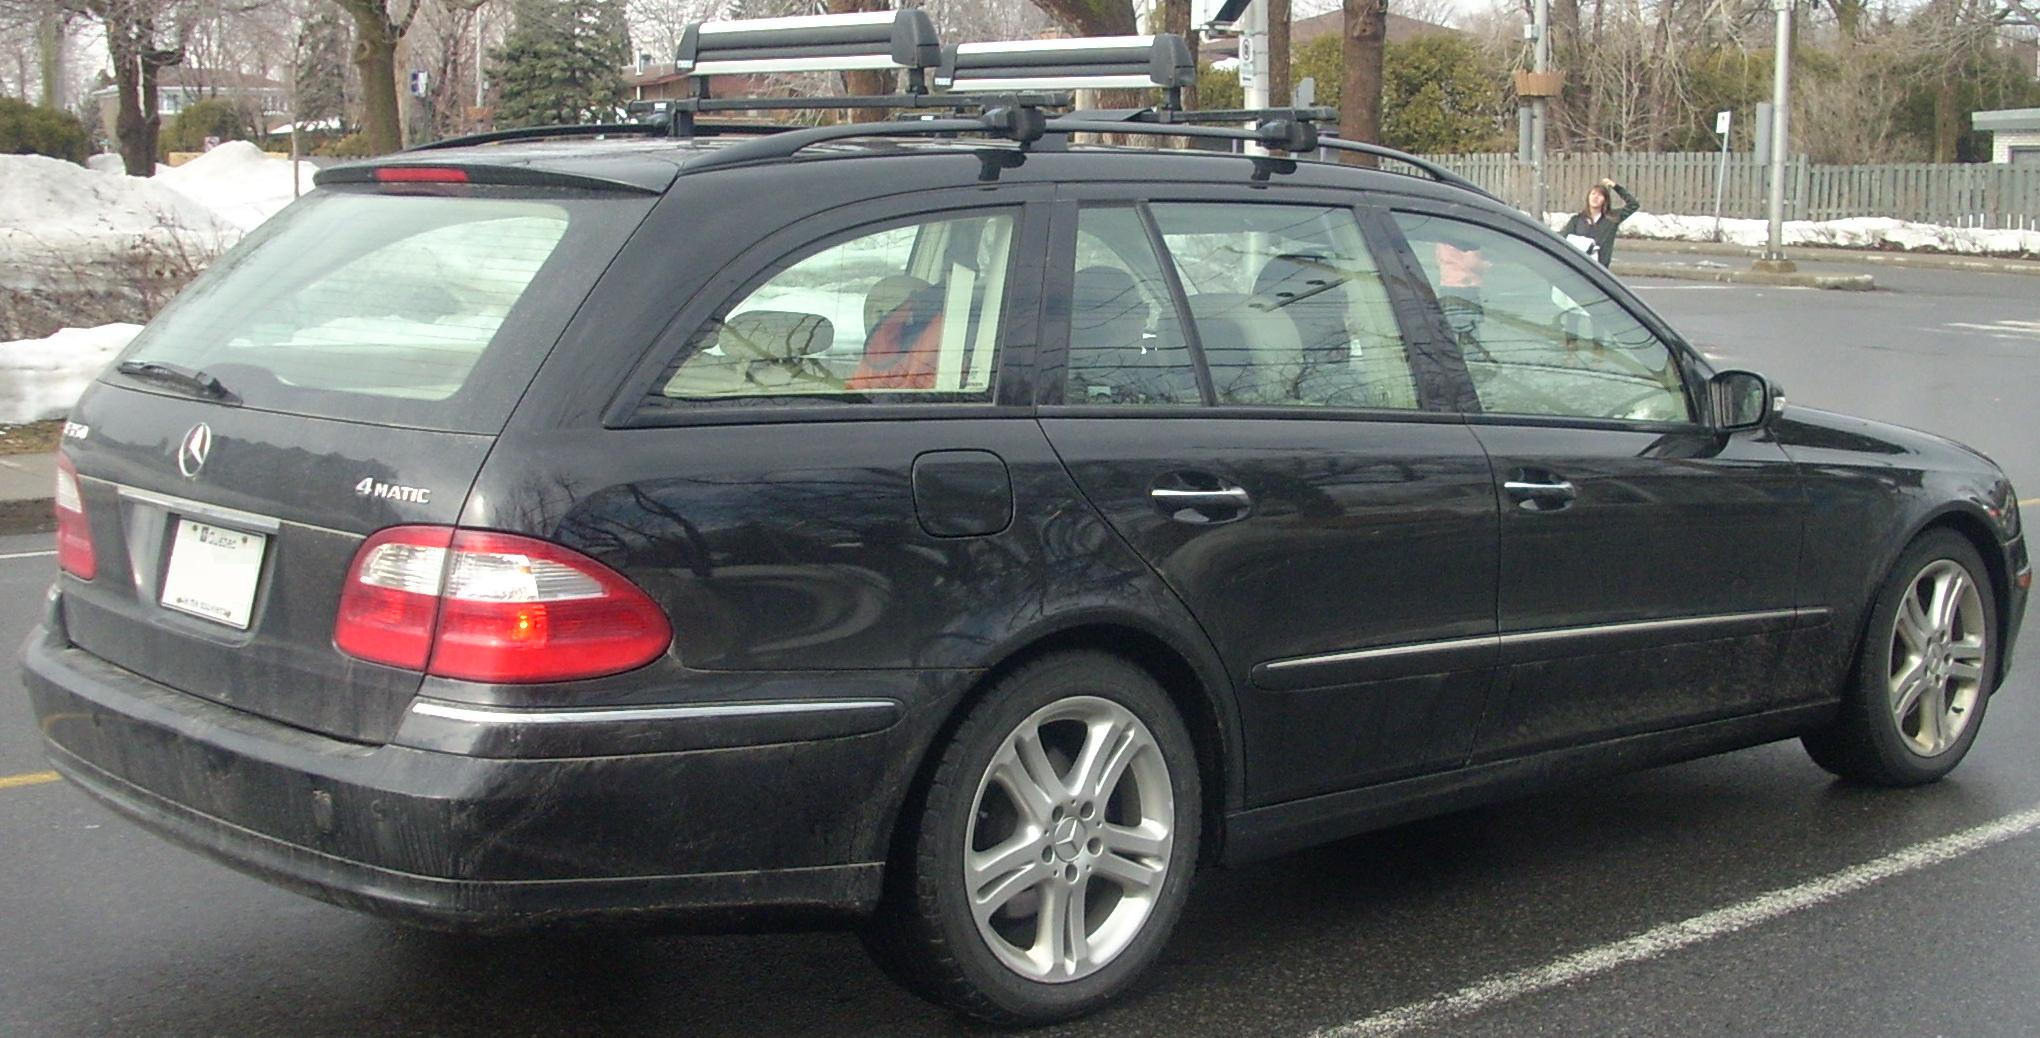 file:'04-'06 mercedes-benz e350 wagon 4matic - wikimedia commons